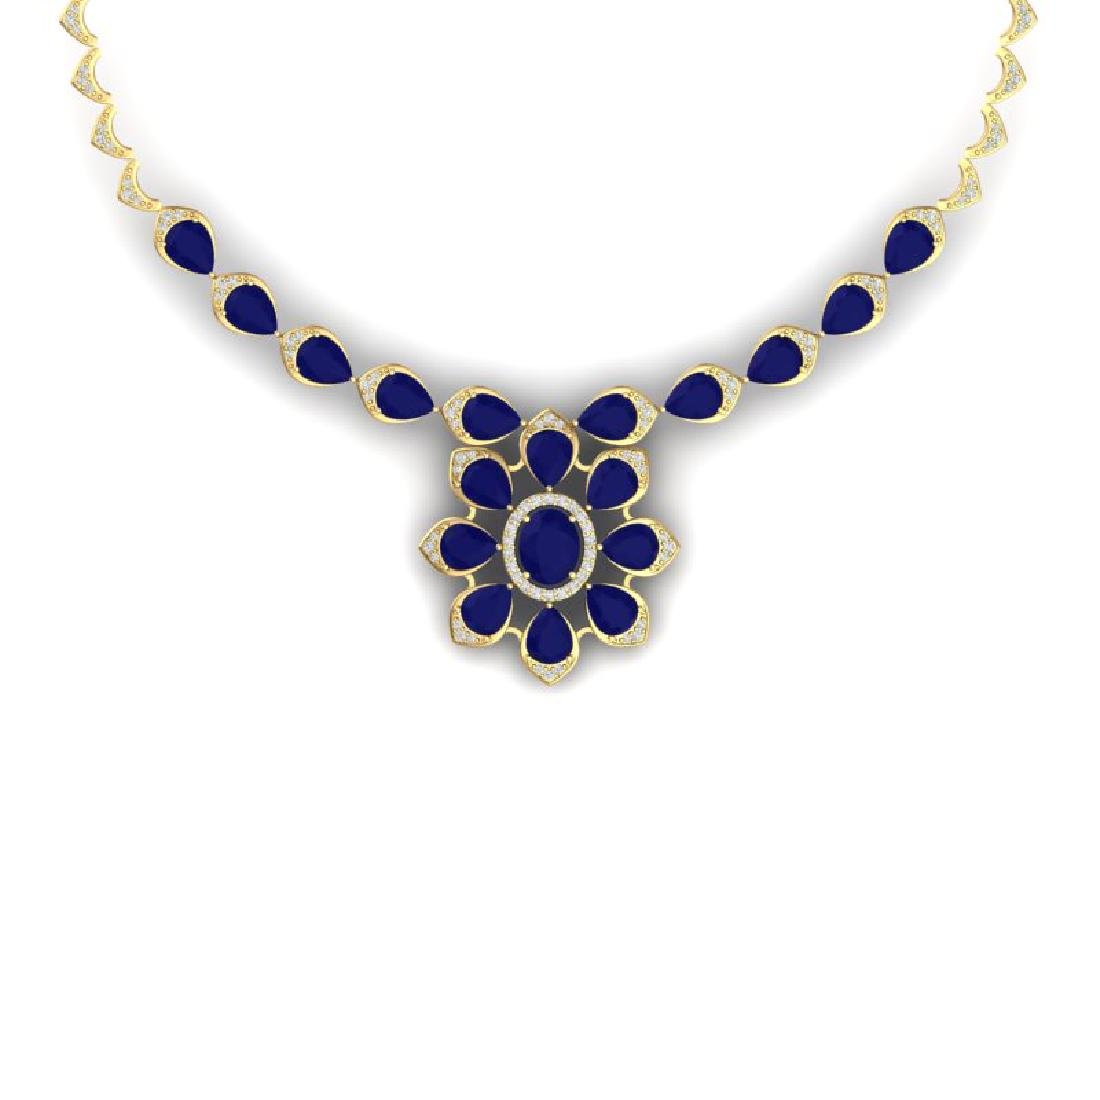 30.70 CTW Royalty Sapphire & VS Diamond Necklace 18K